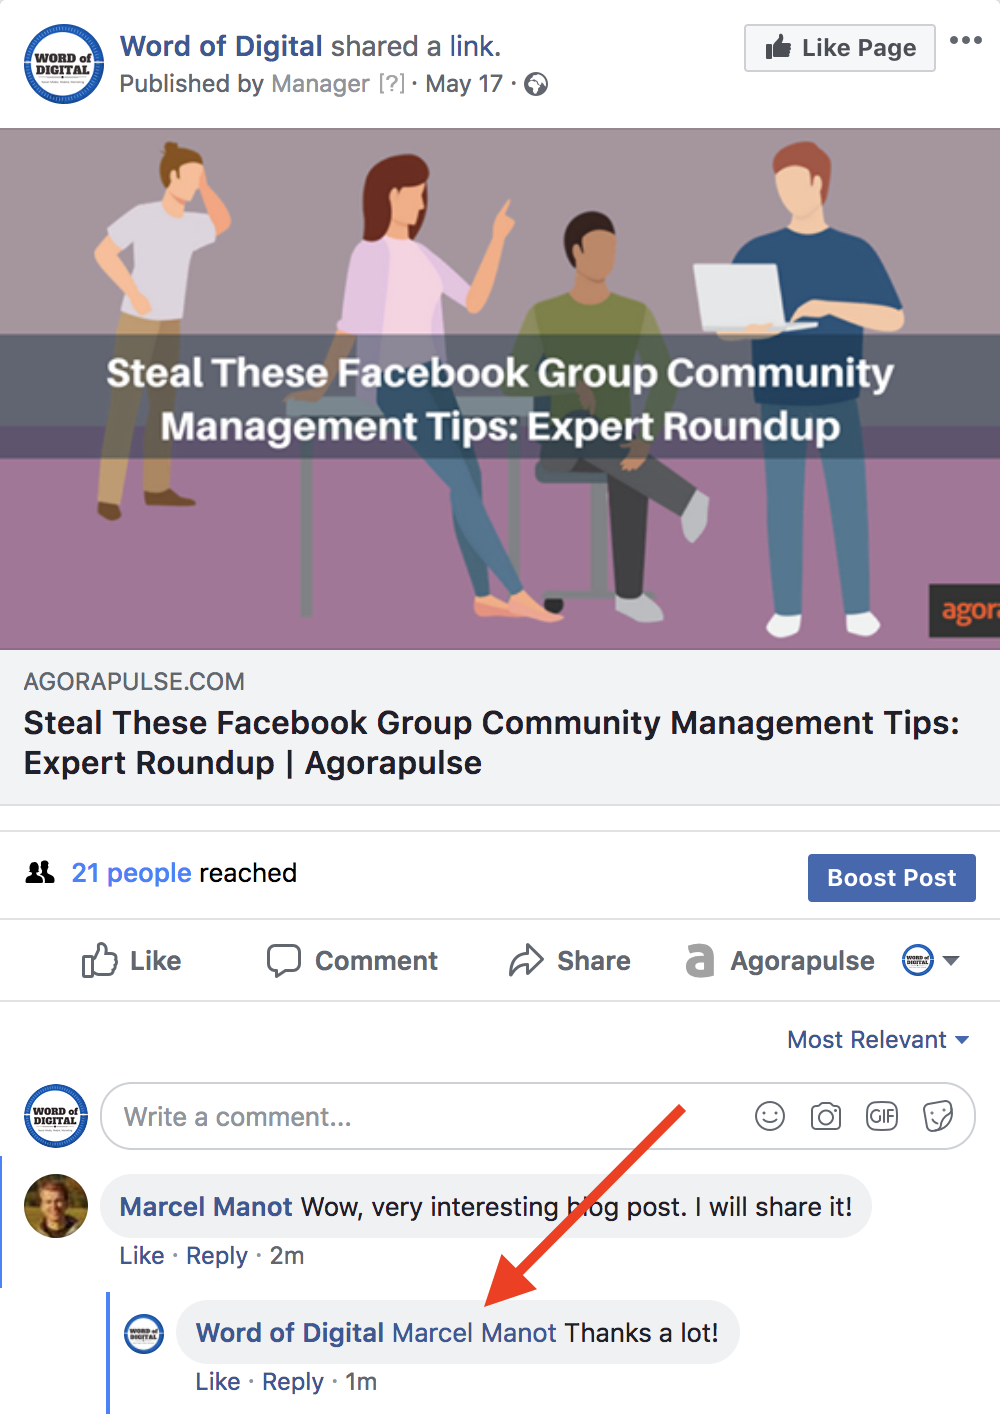 Agorapulse - How do I mention user in a comment on Facebook